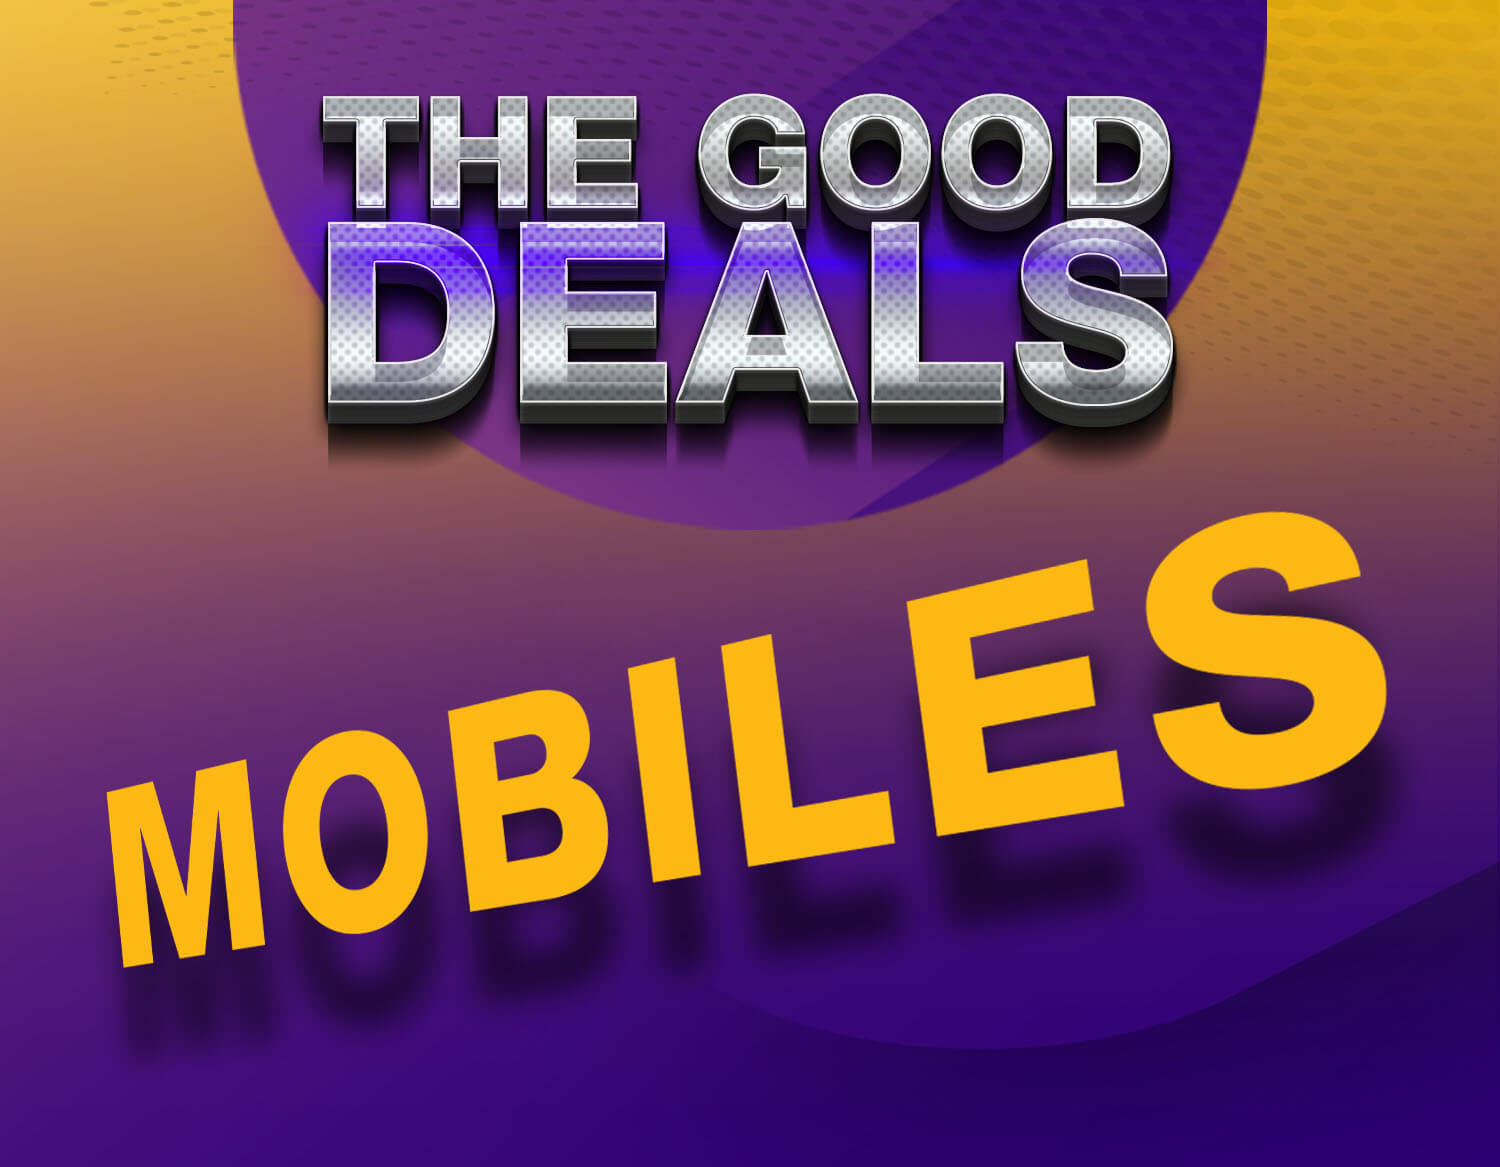 samsung mobile offers in kuwait online discount offers deals price discount andalus